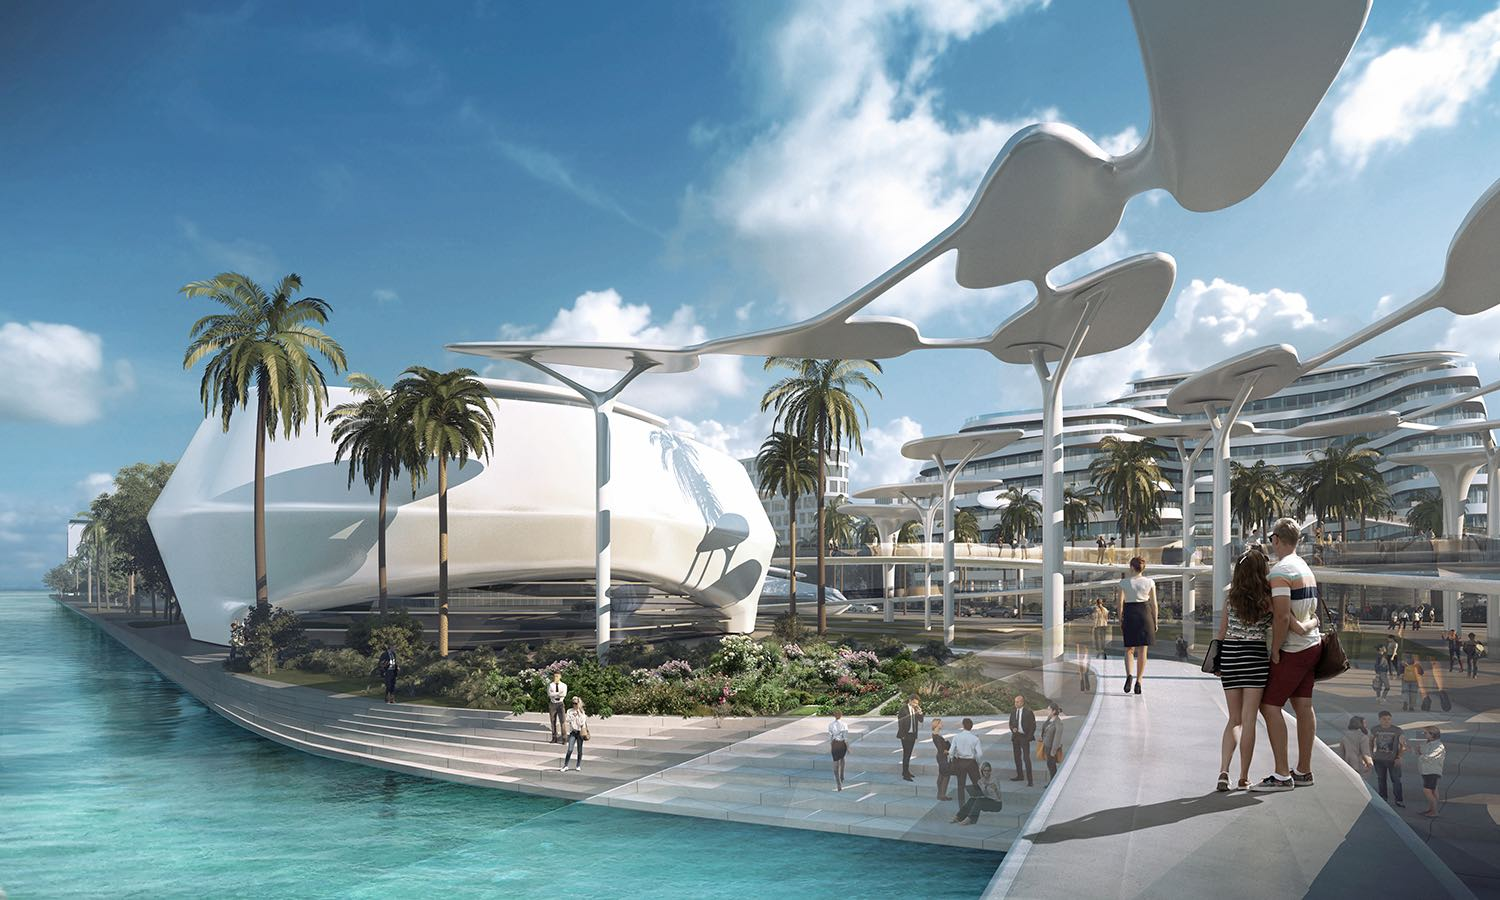 Oceans-Paradise-designed-by-CAA-Architects-005